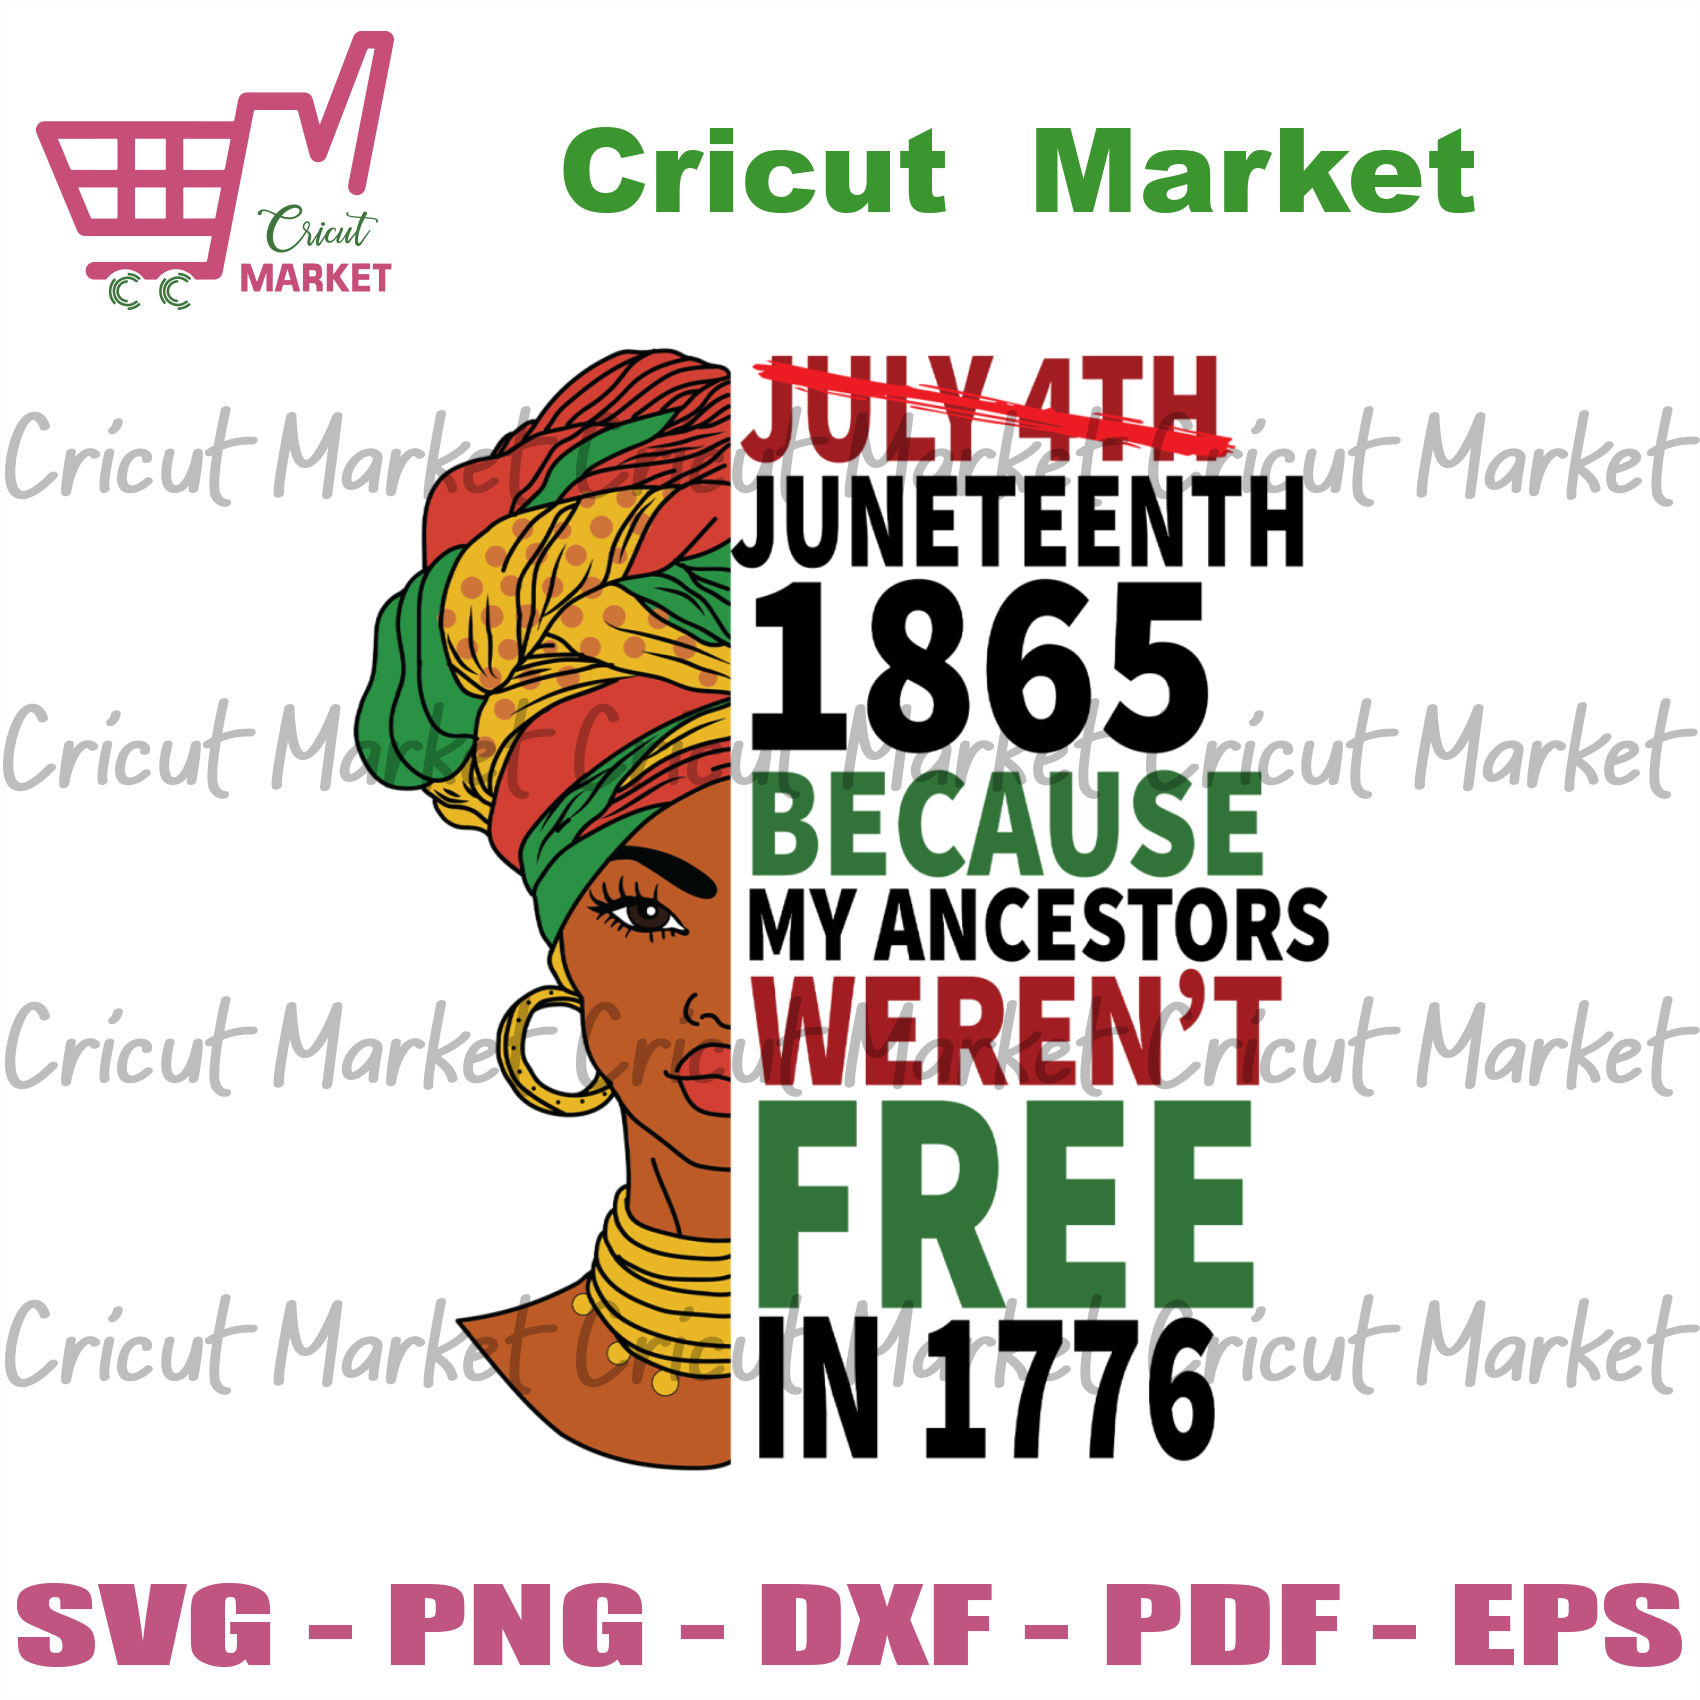 Juneteenth 1865 Because My Ancestors Werent Free In 1776, Juneteenth Svg, Melanin Svg, Afro Svg, Black Girl Svg, Melanin Poppin, Black Woman Svg, Afro Birthday, Living My Best Life, Independe